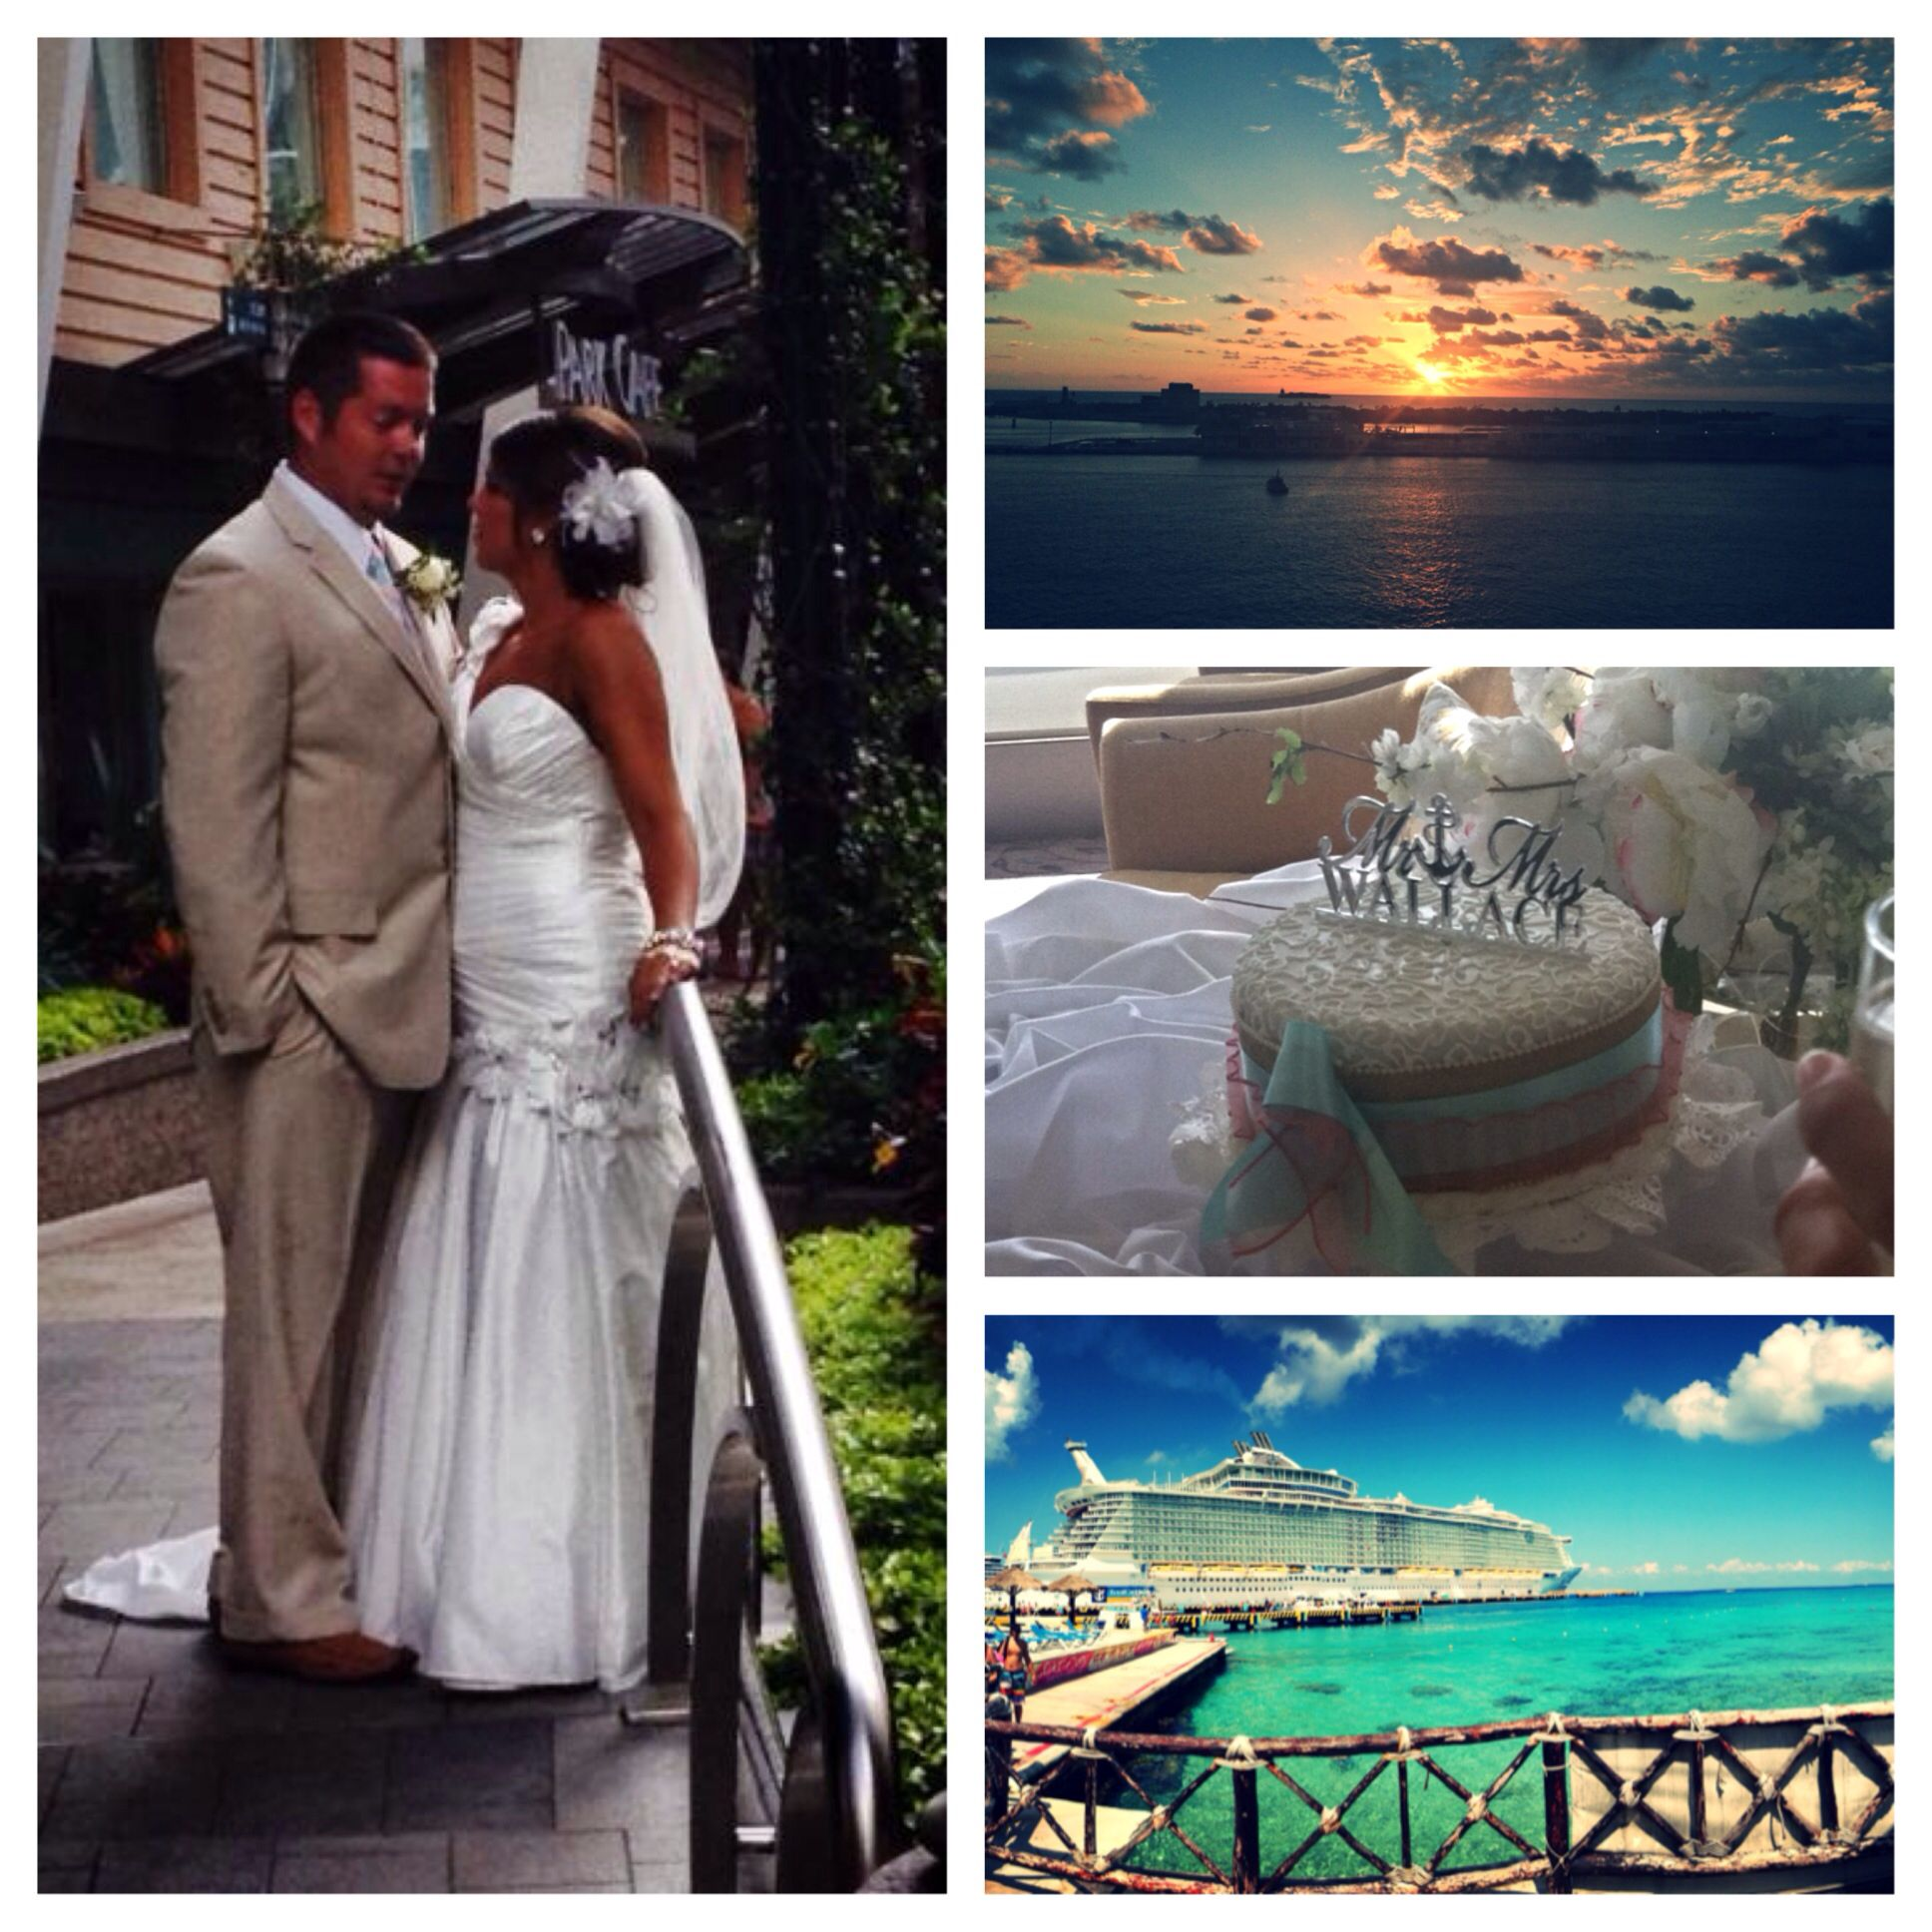 Here is a pin of the best wedding ever on a cruise ship! I